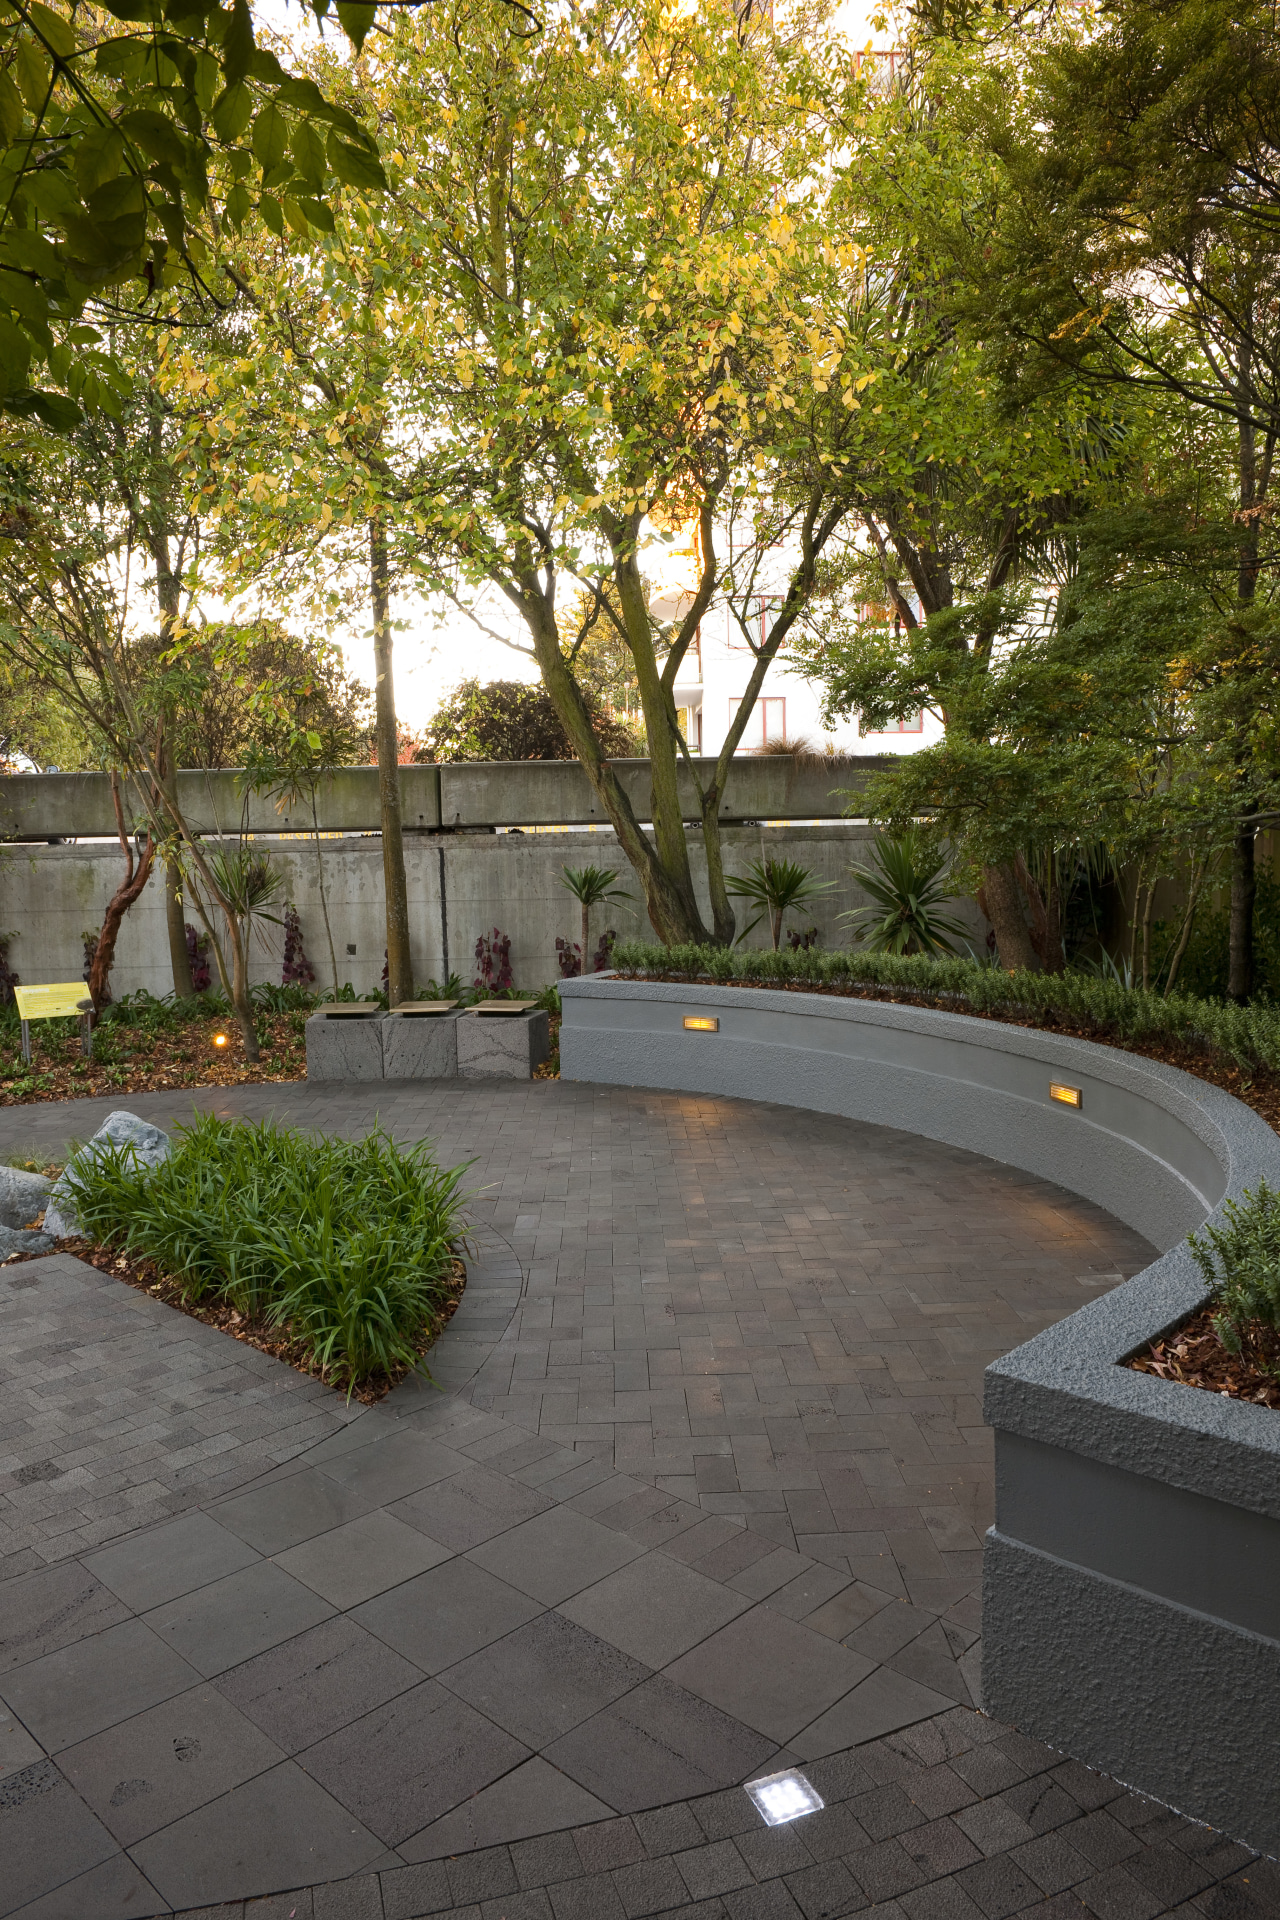 View of private courtyard which features native planting, architecture, backyard, courtyard, estate, garden, grass, landscape, landscaping, leaf, outdoor structure, patio, plant, real estate, residential area, road surface, tree, walkway, wall, yard, brown, gray